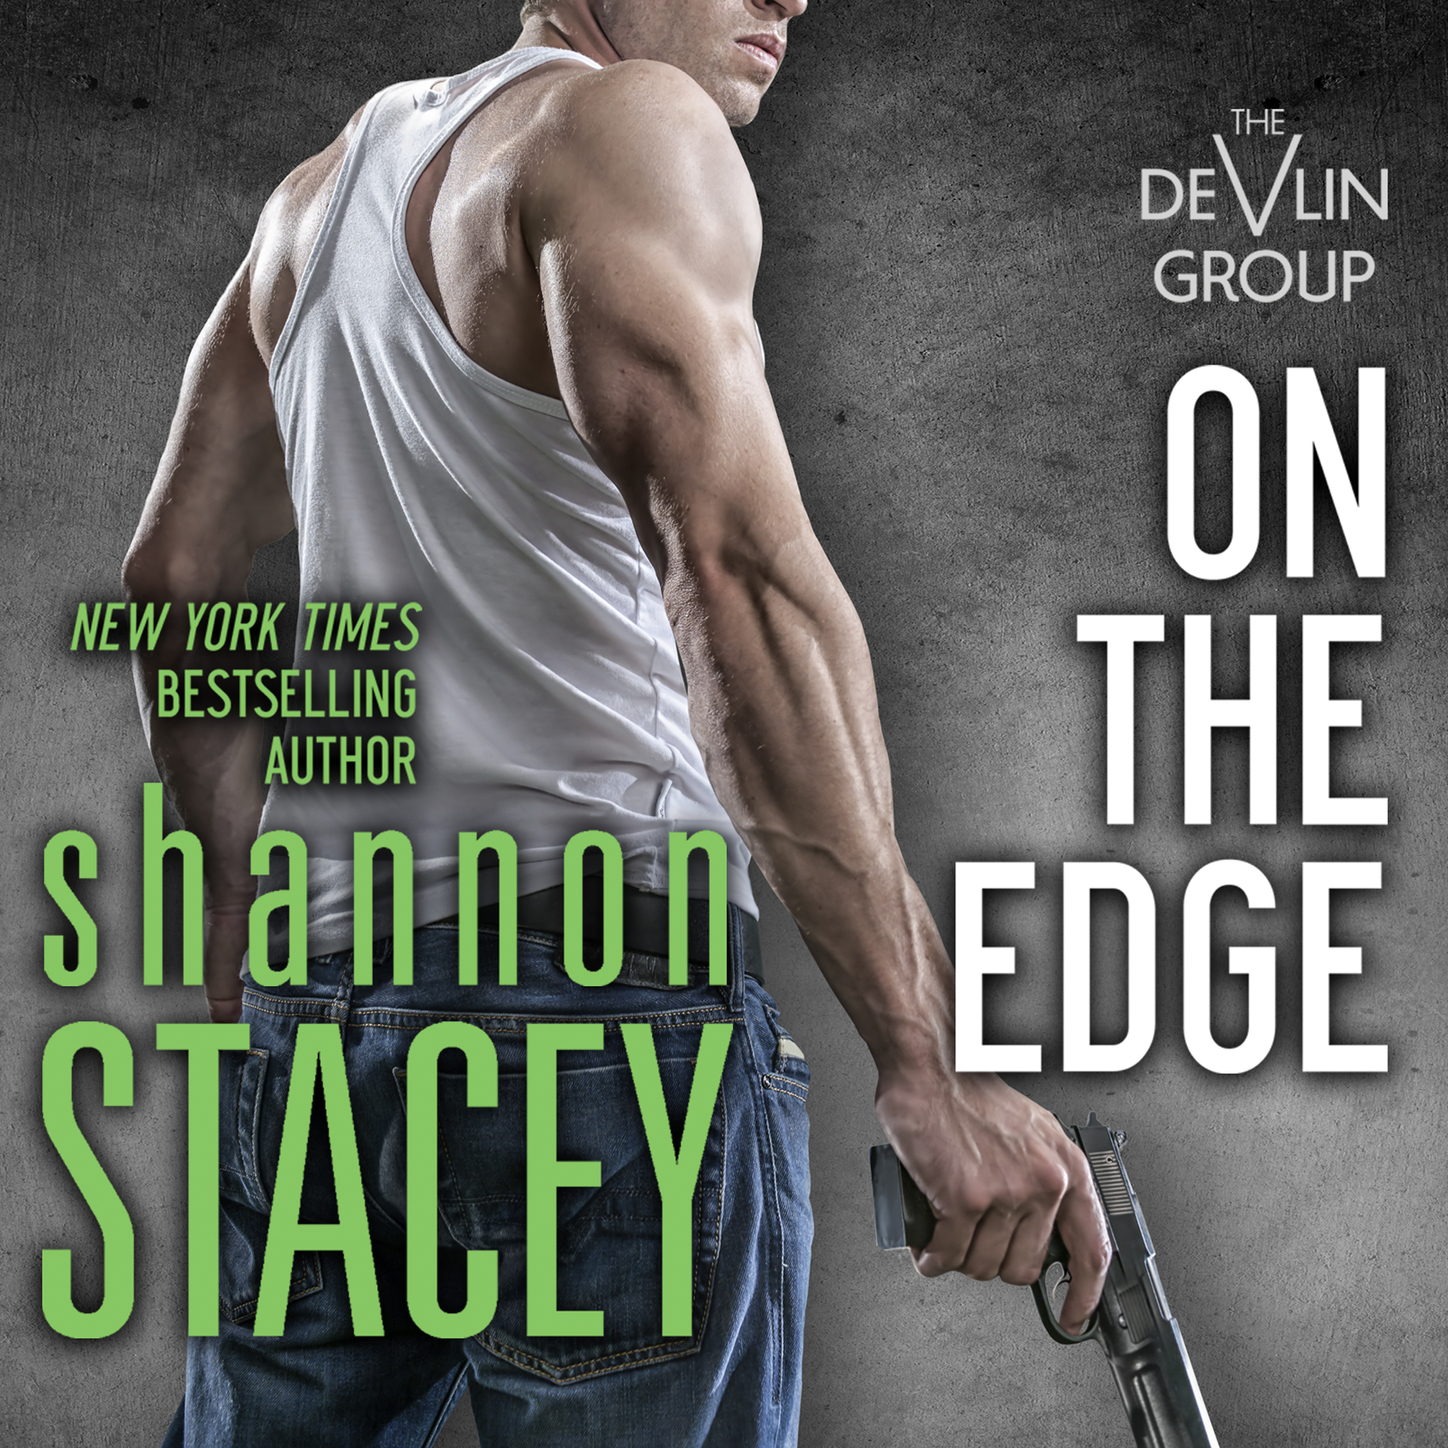 Shannon Stacey On the Edge (Unabridged)